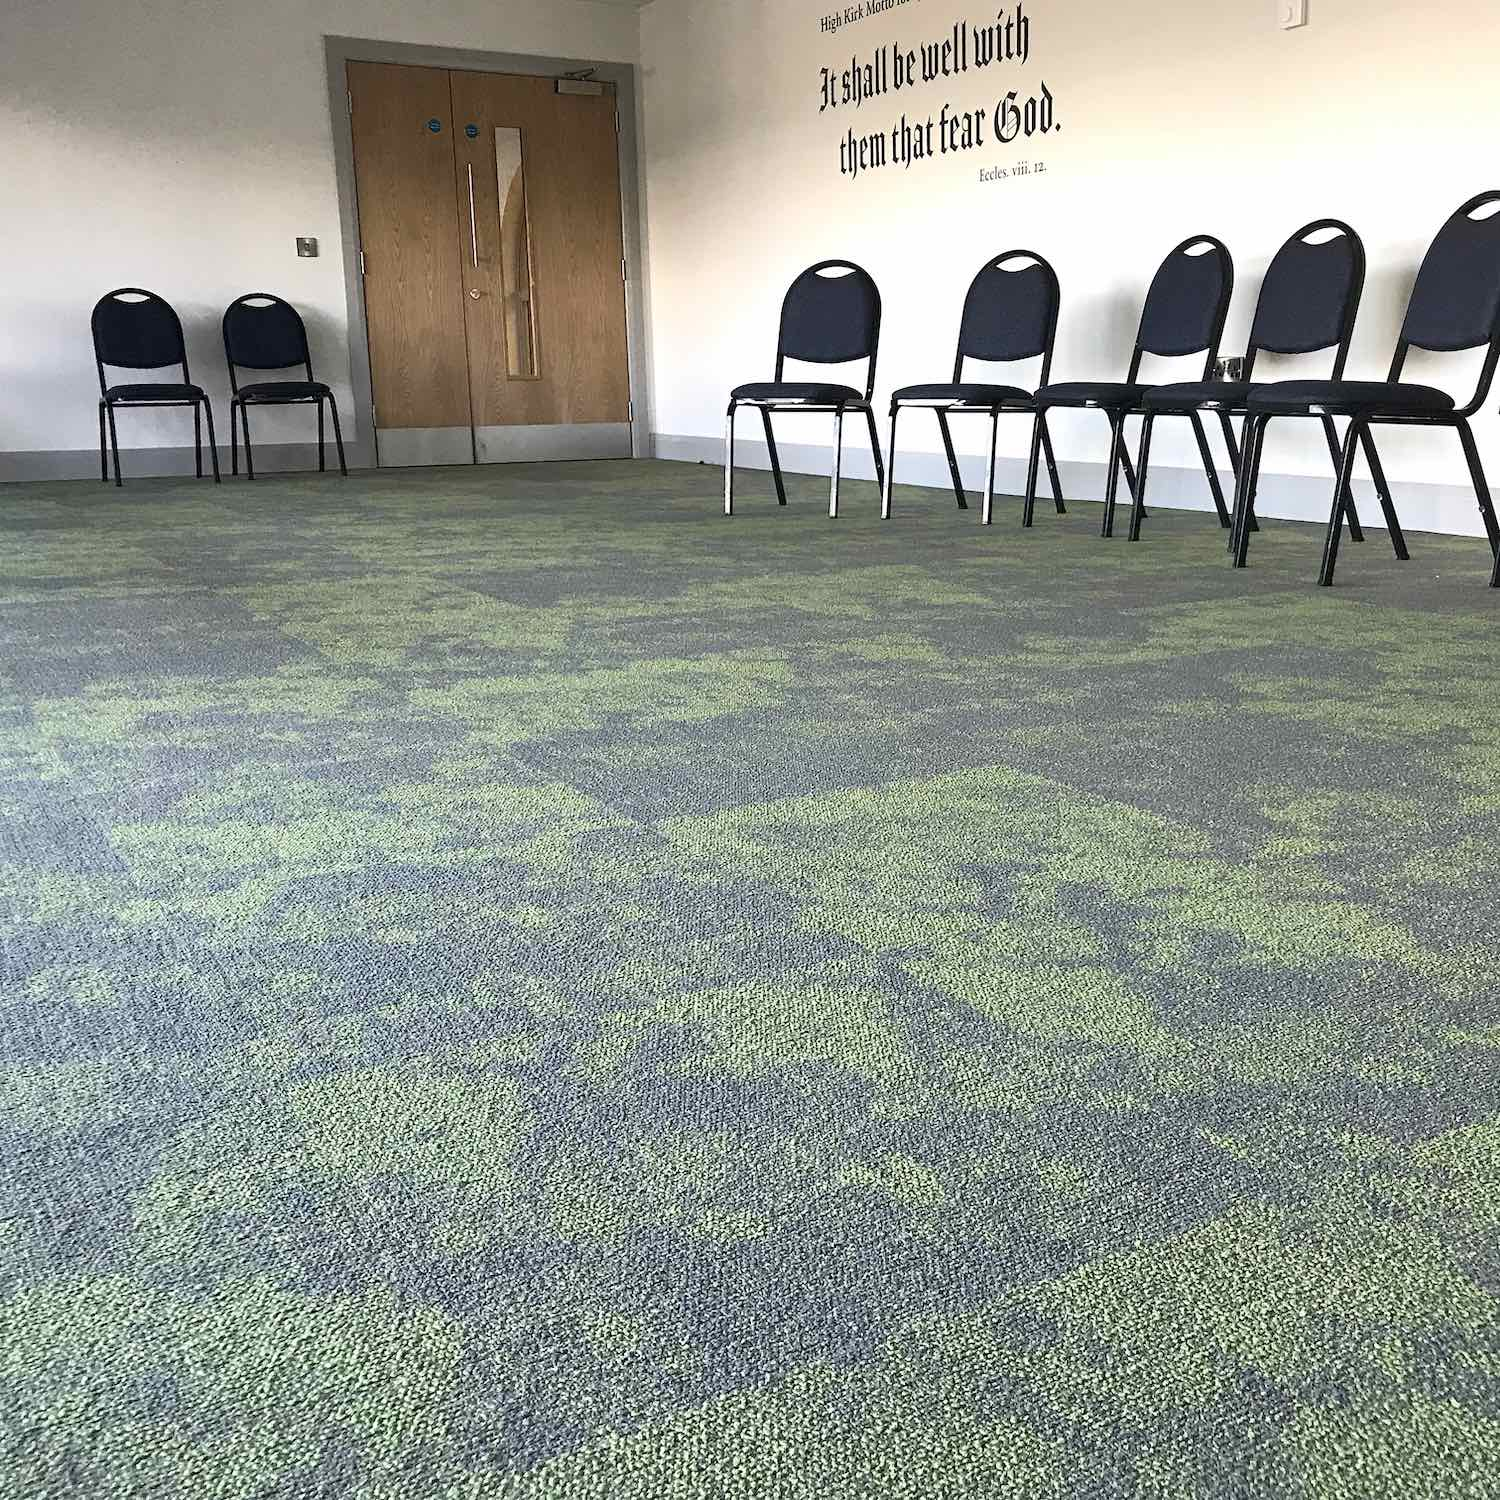 Paragon Carpet Tiles | High Kirk Church | Commercial Carpets